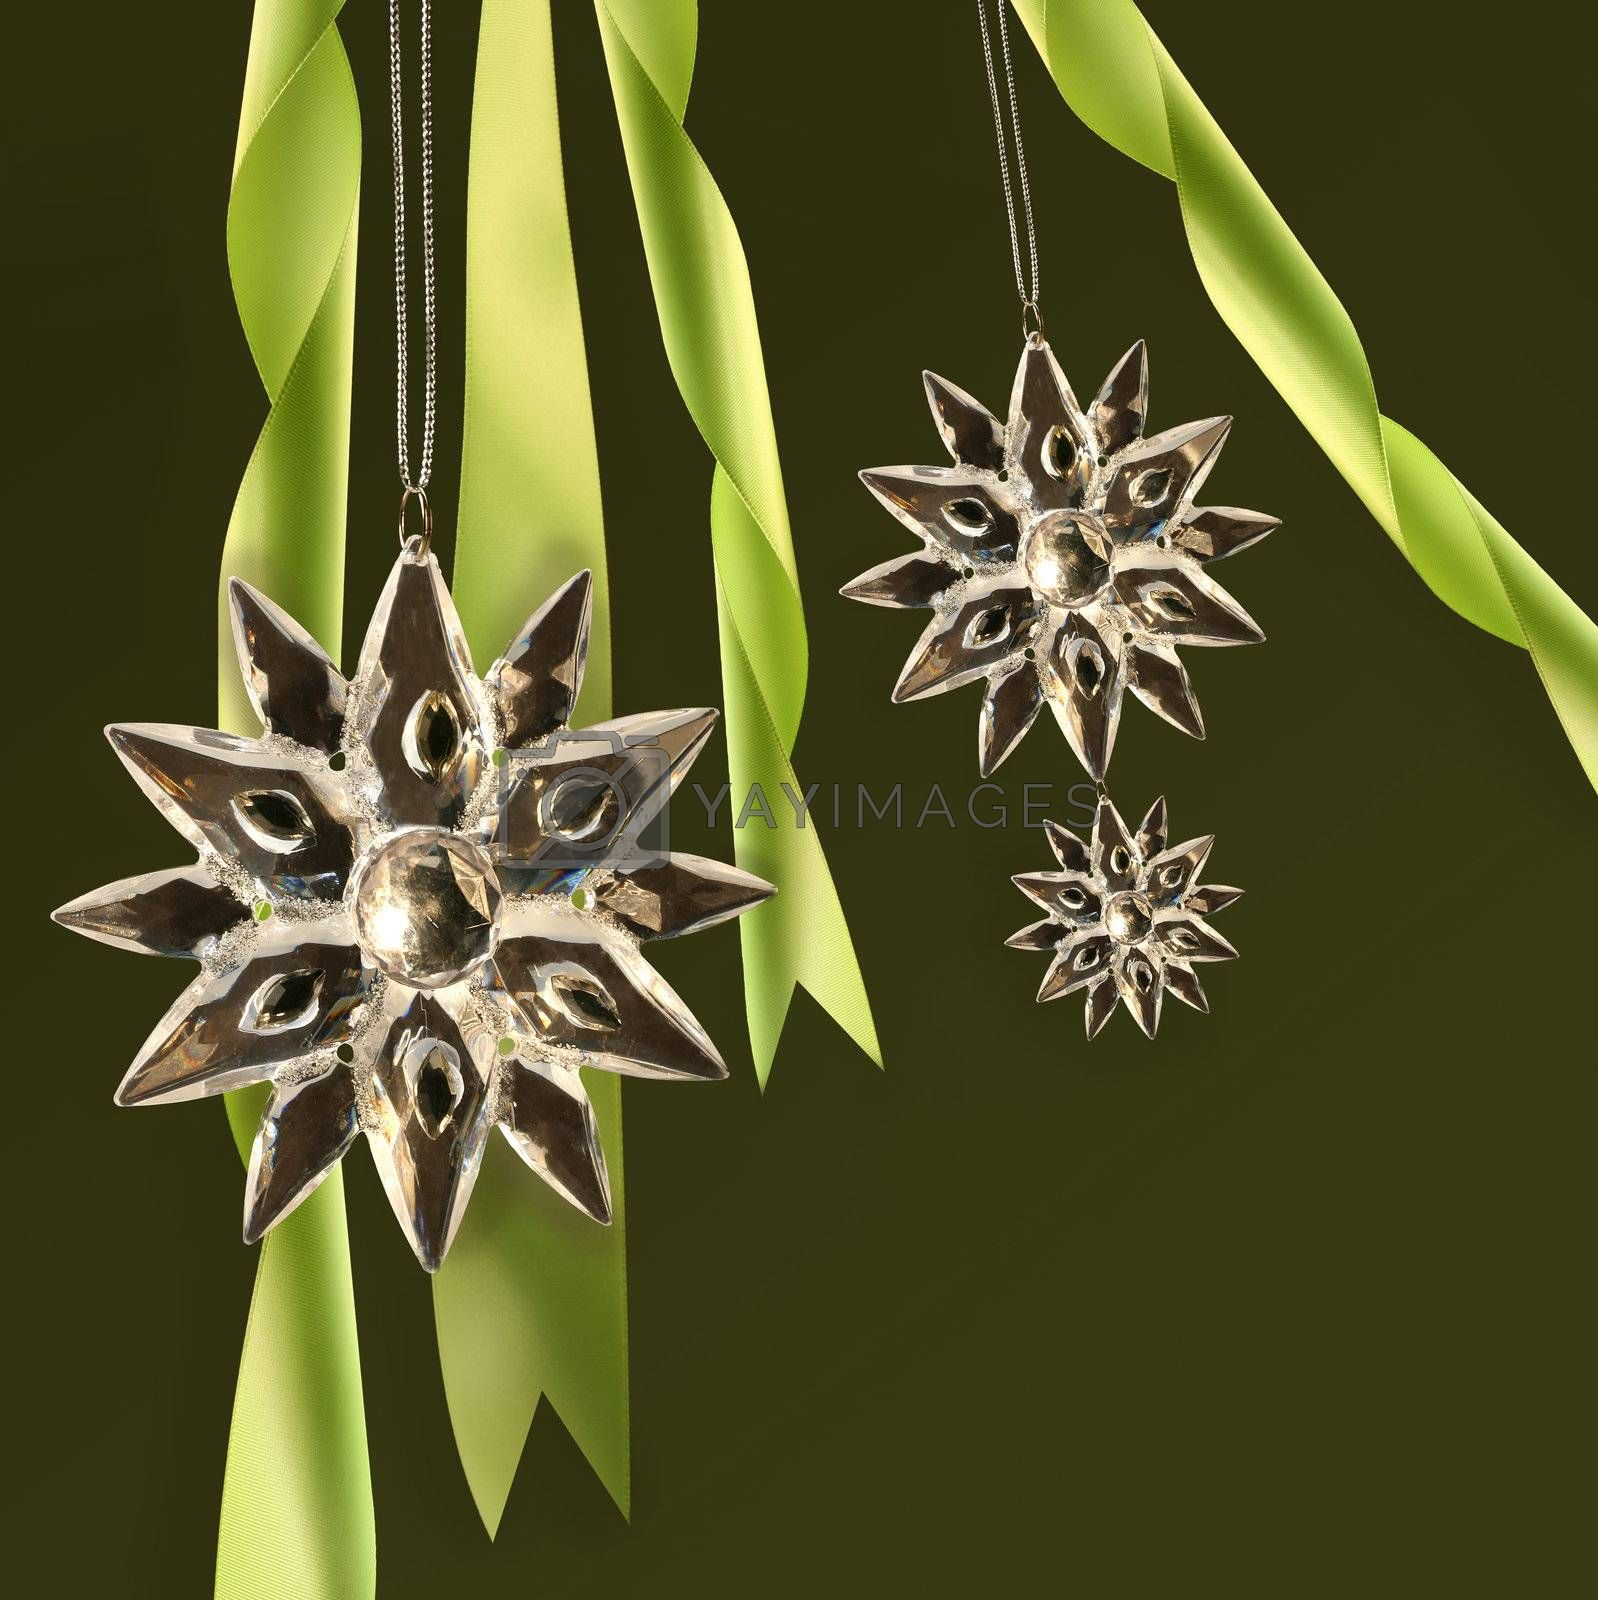 Crystal snowflakes with green ribbons on dark background